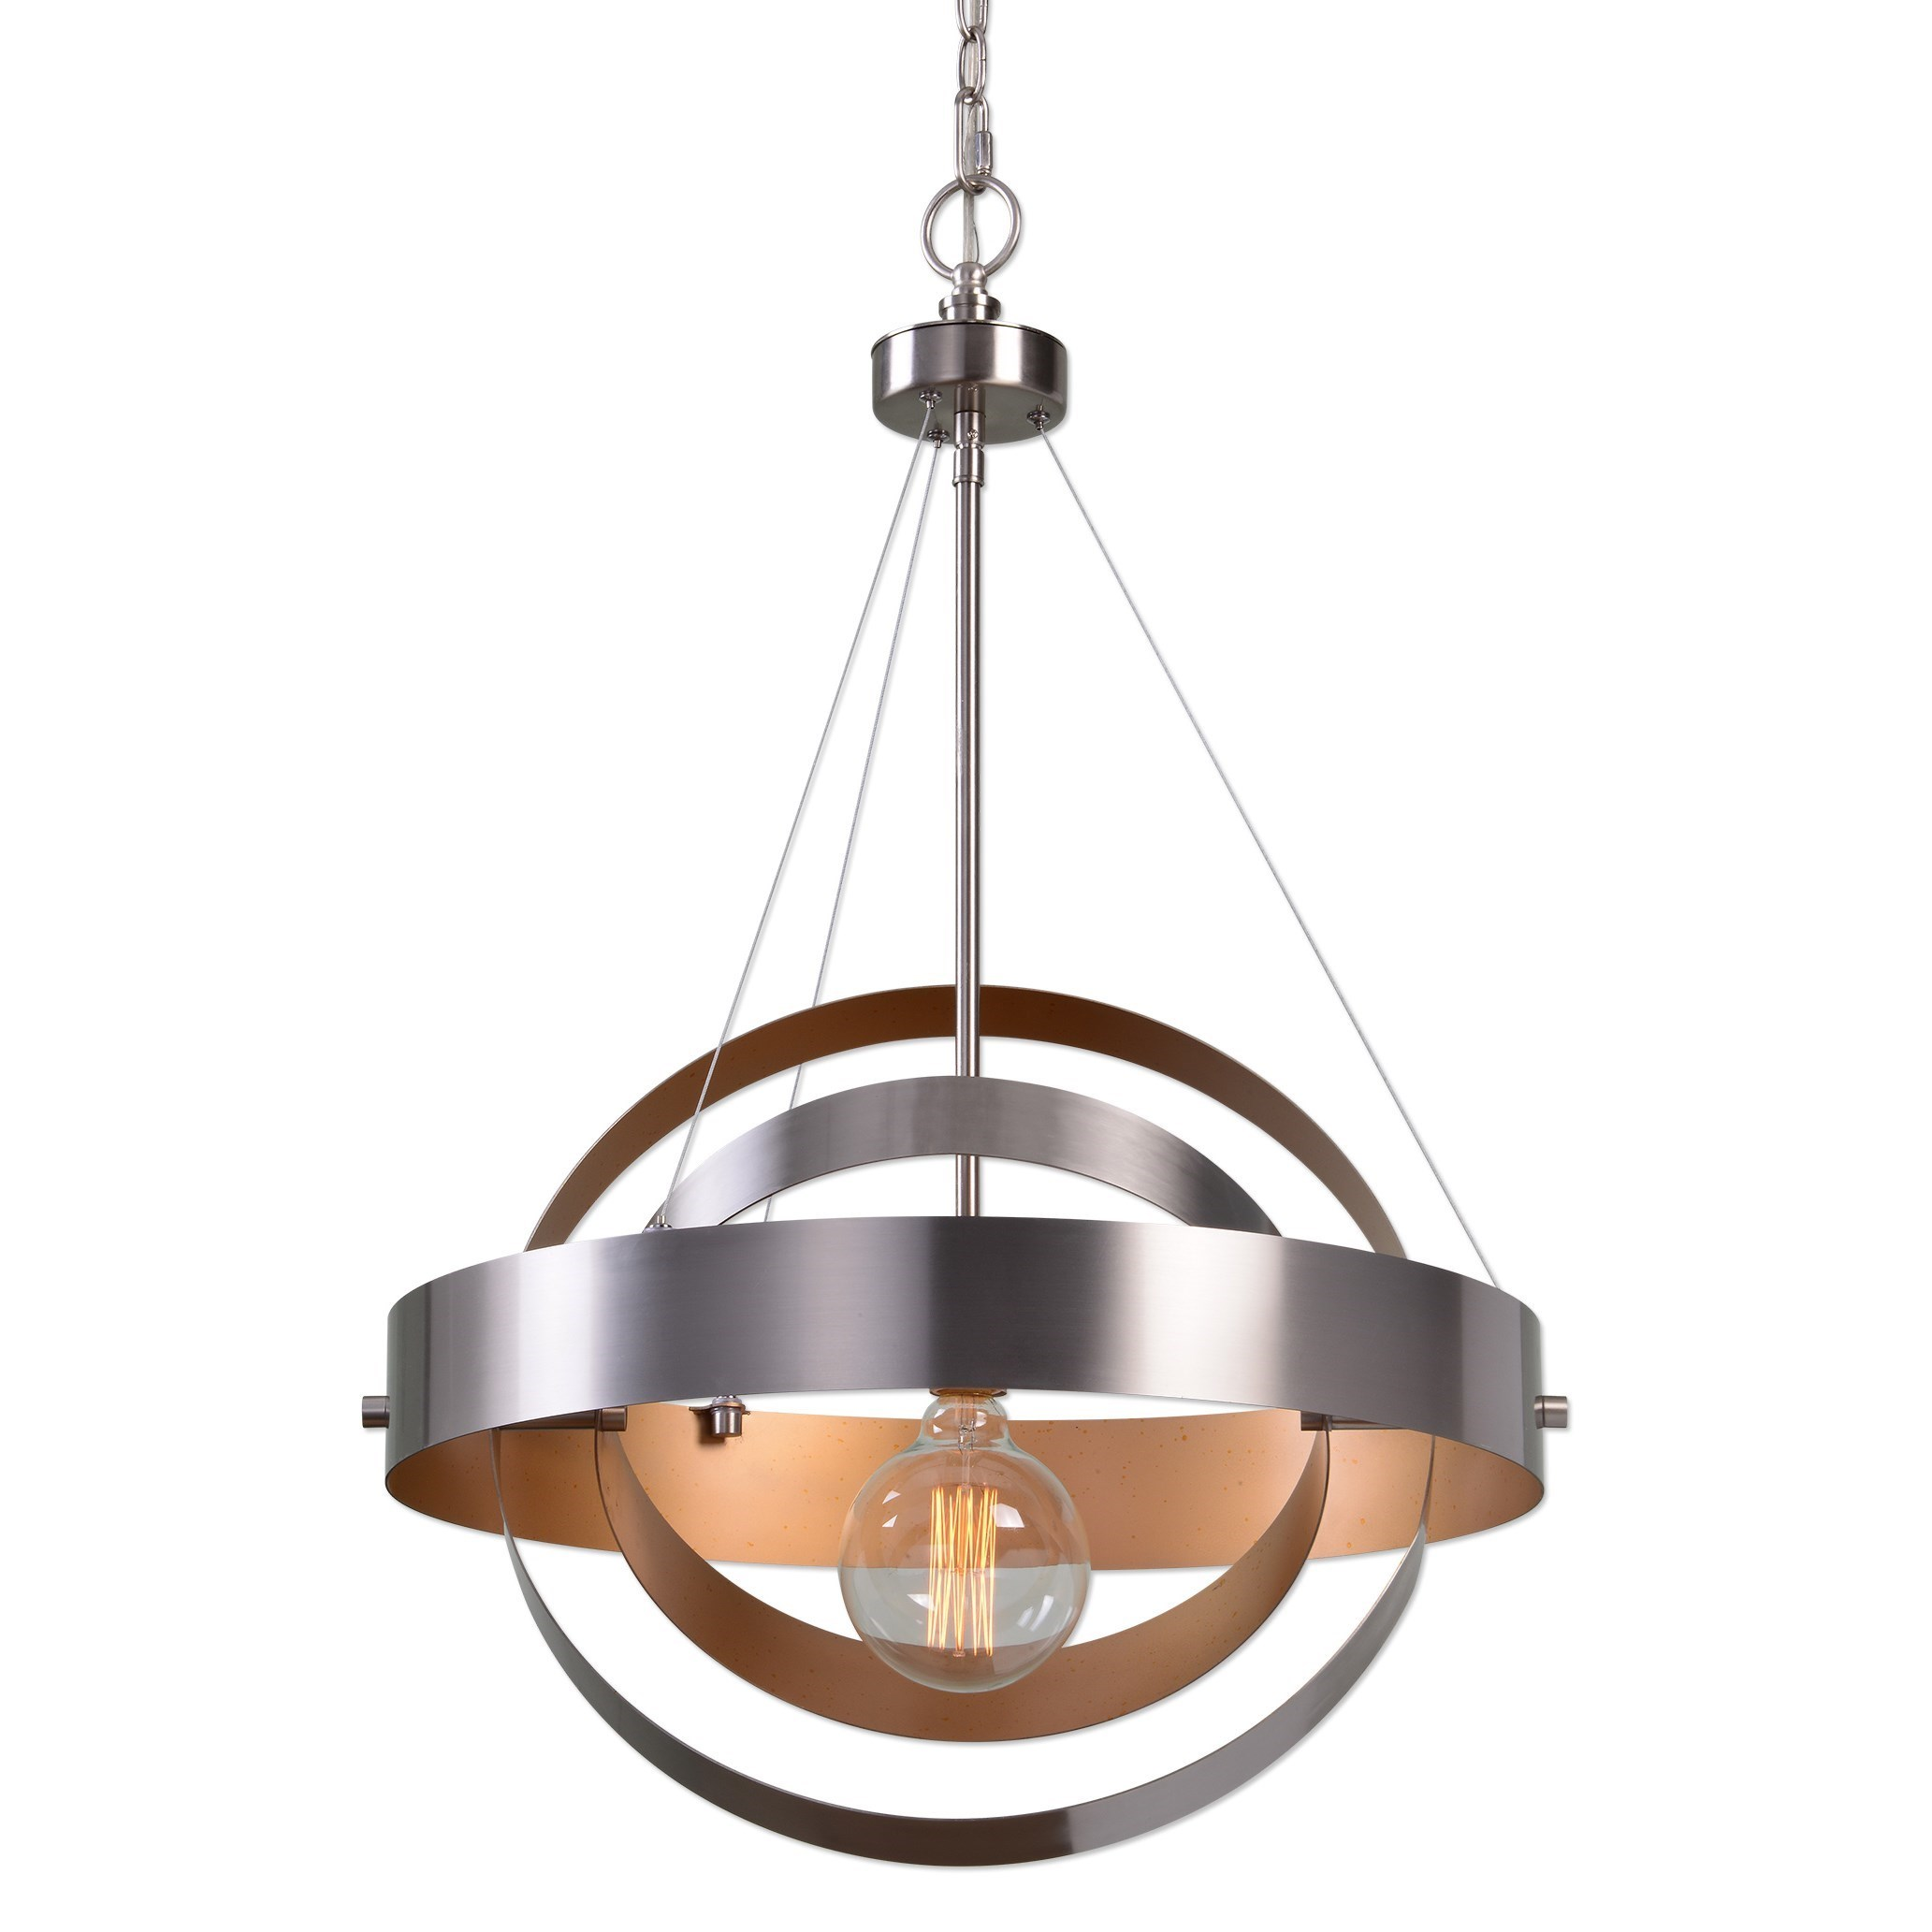 Uttermost Lighting Fixtures Anello 1 Light Brushed Nickel Pendant - Item Number: 22095